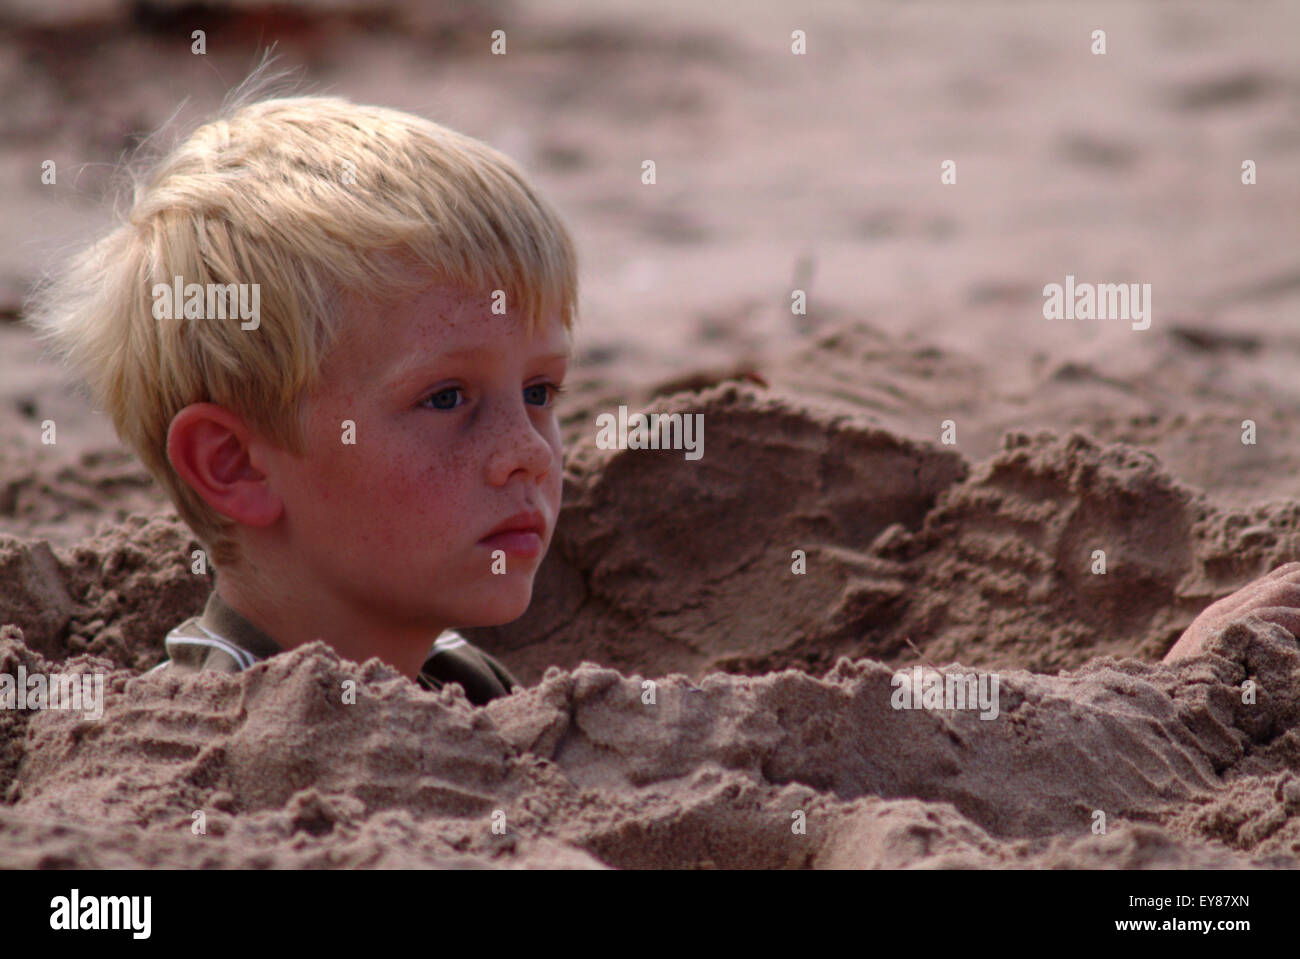 Blonde haired boy looking pensive, sitting in a deep sand hole - Stock Image